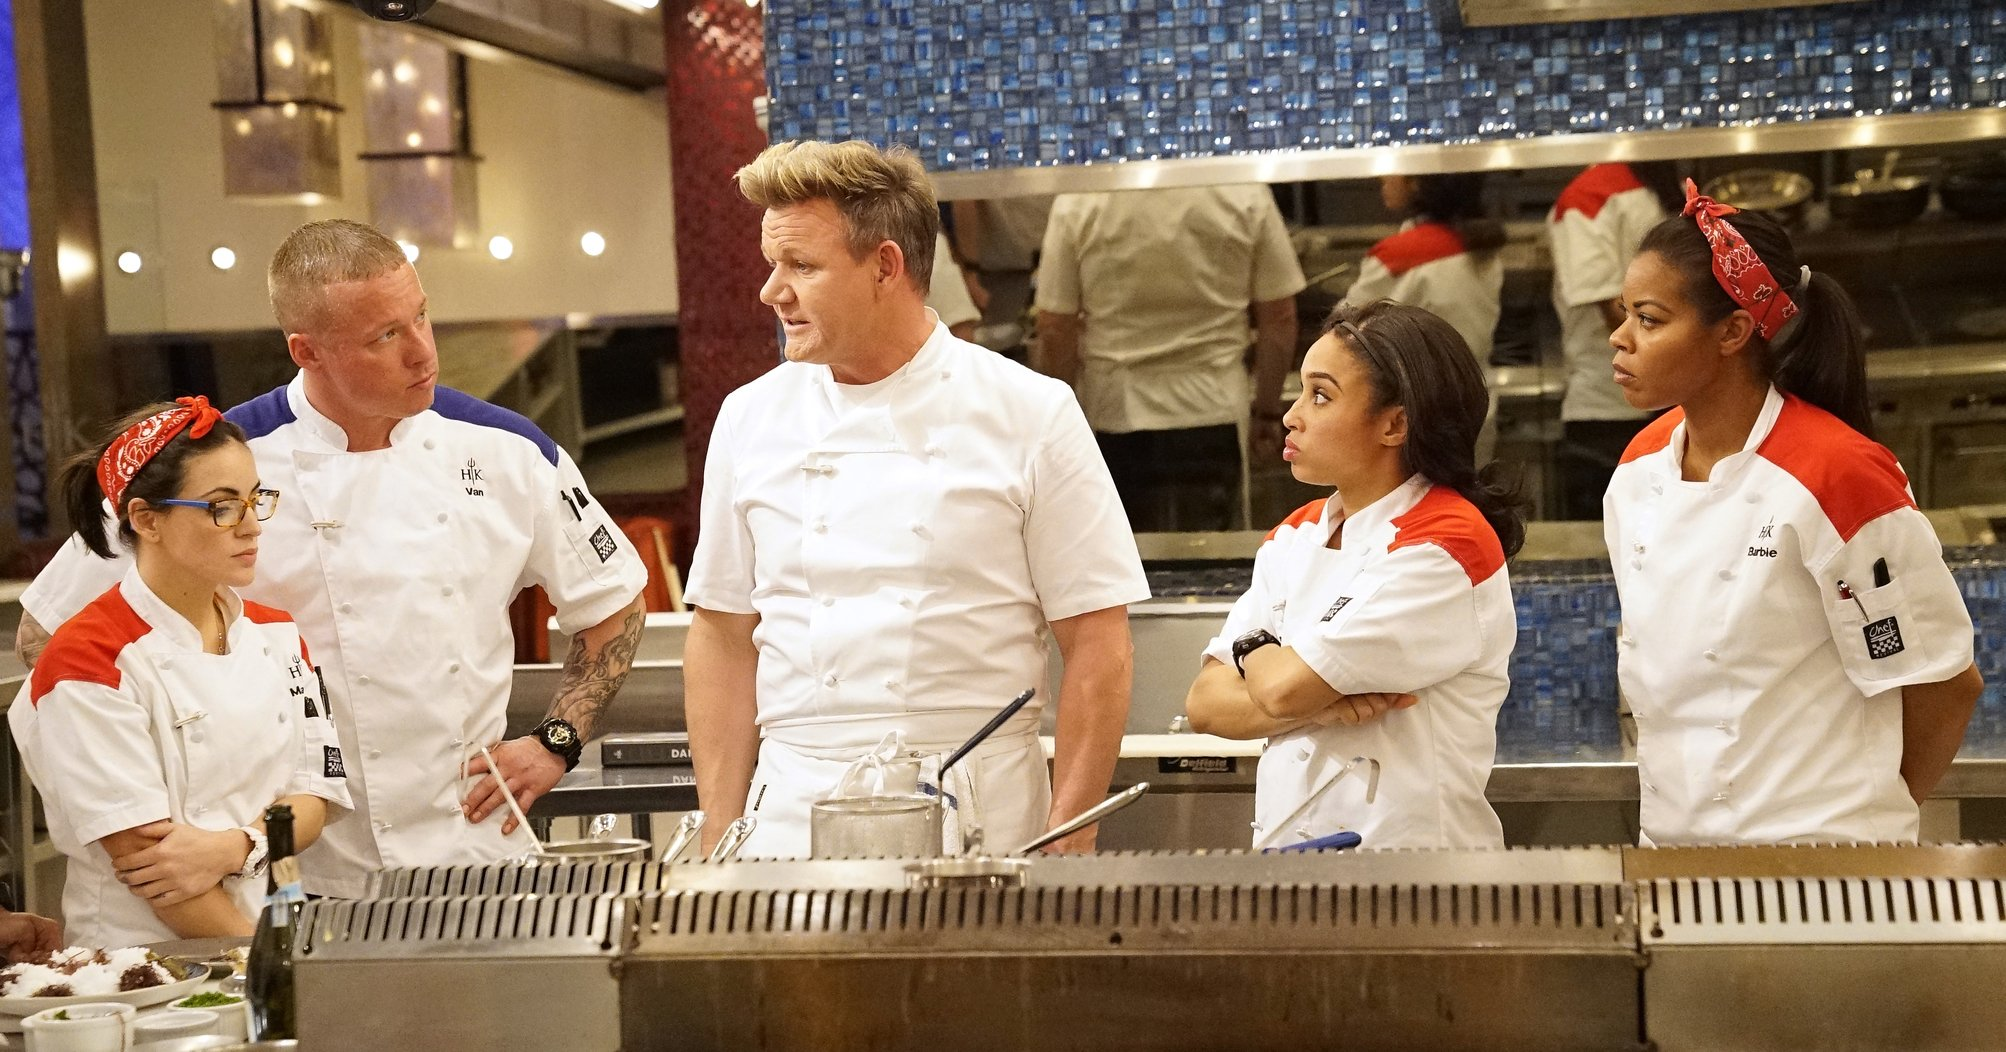 America, are you ready for a tough night in #HellsKitchen ? I am. See you at 8/7c on an all new @HellsKitchenFOX ! https://t.co/o9FjAB4RhJ